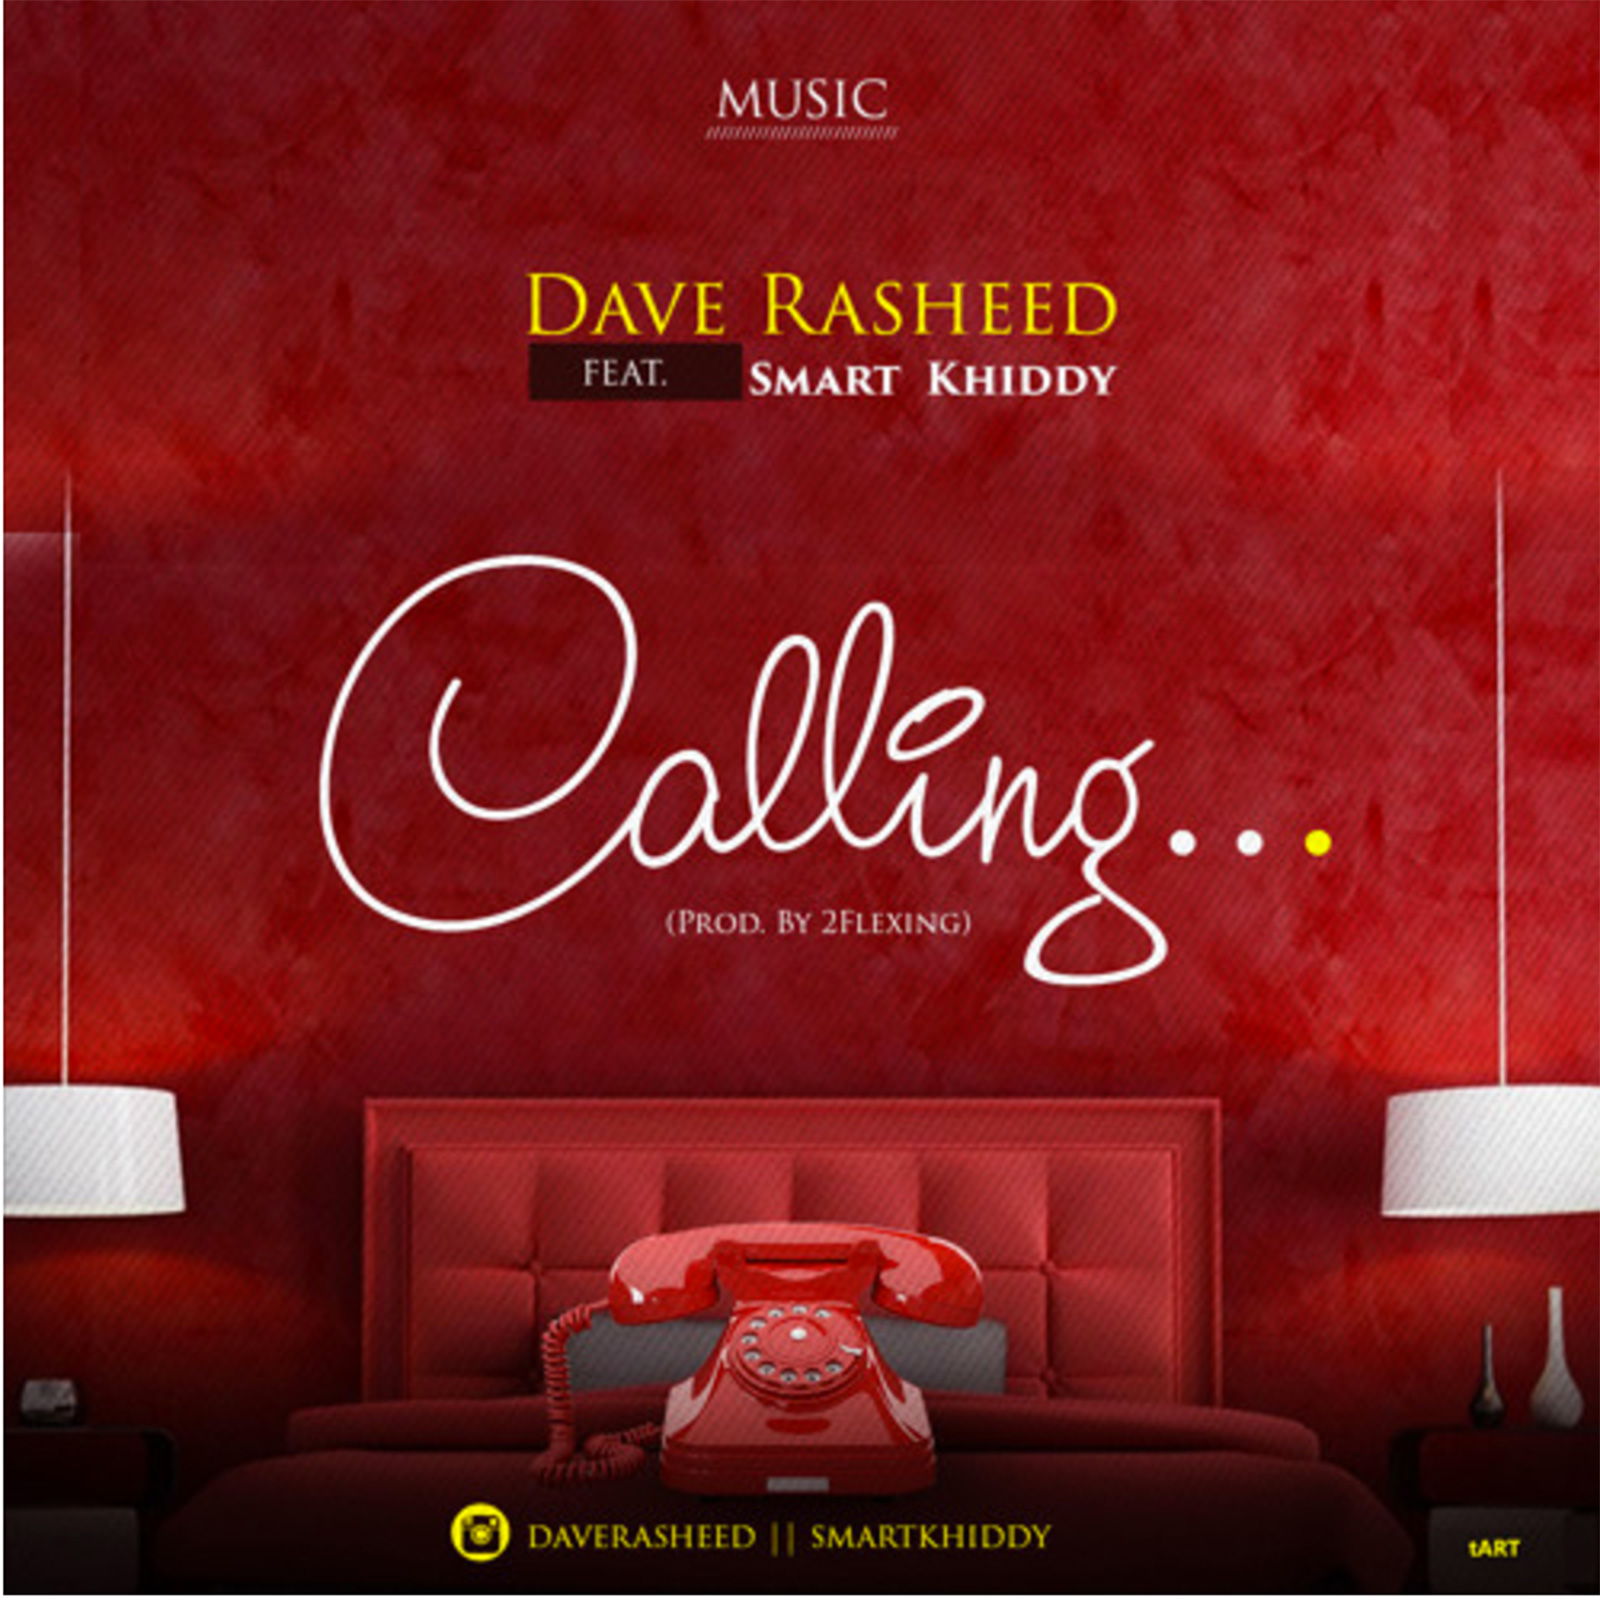 Calling by Dave Rasheed feat. Smart Khiddy